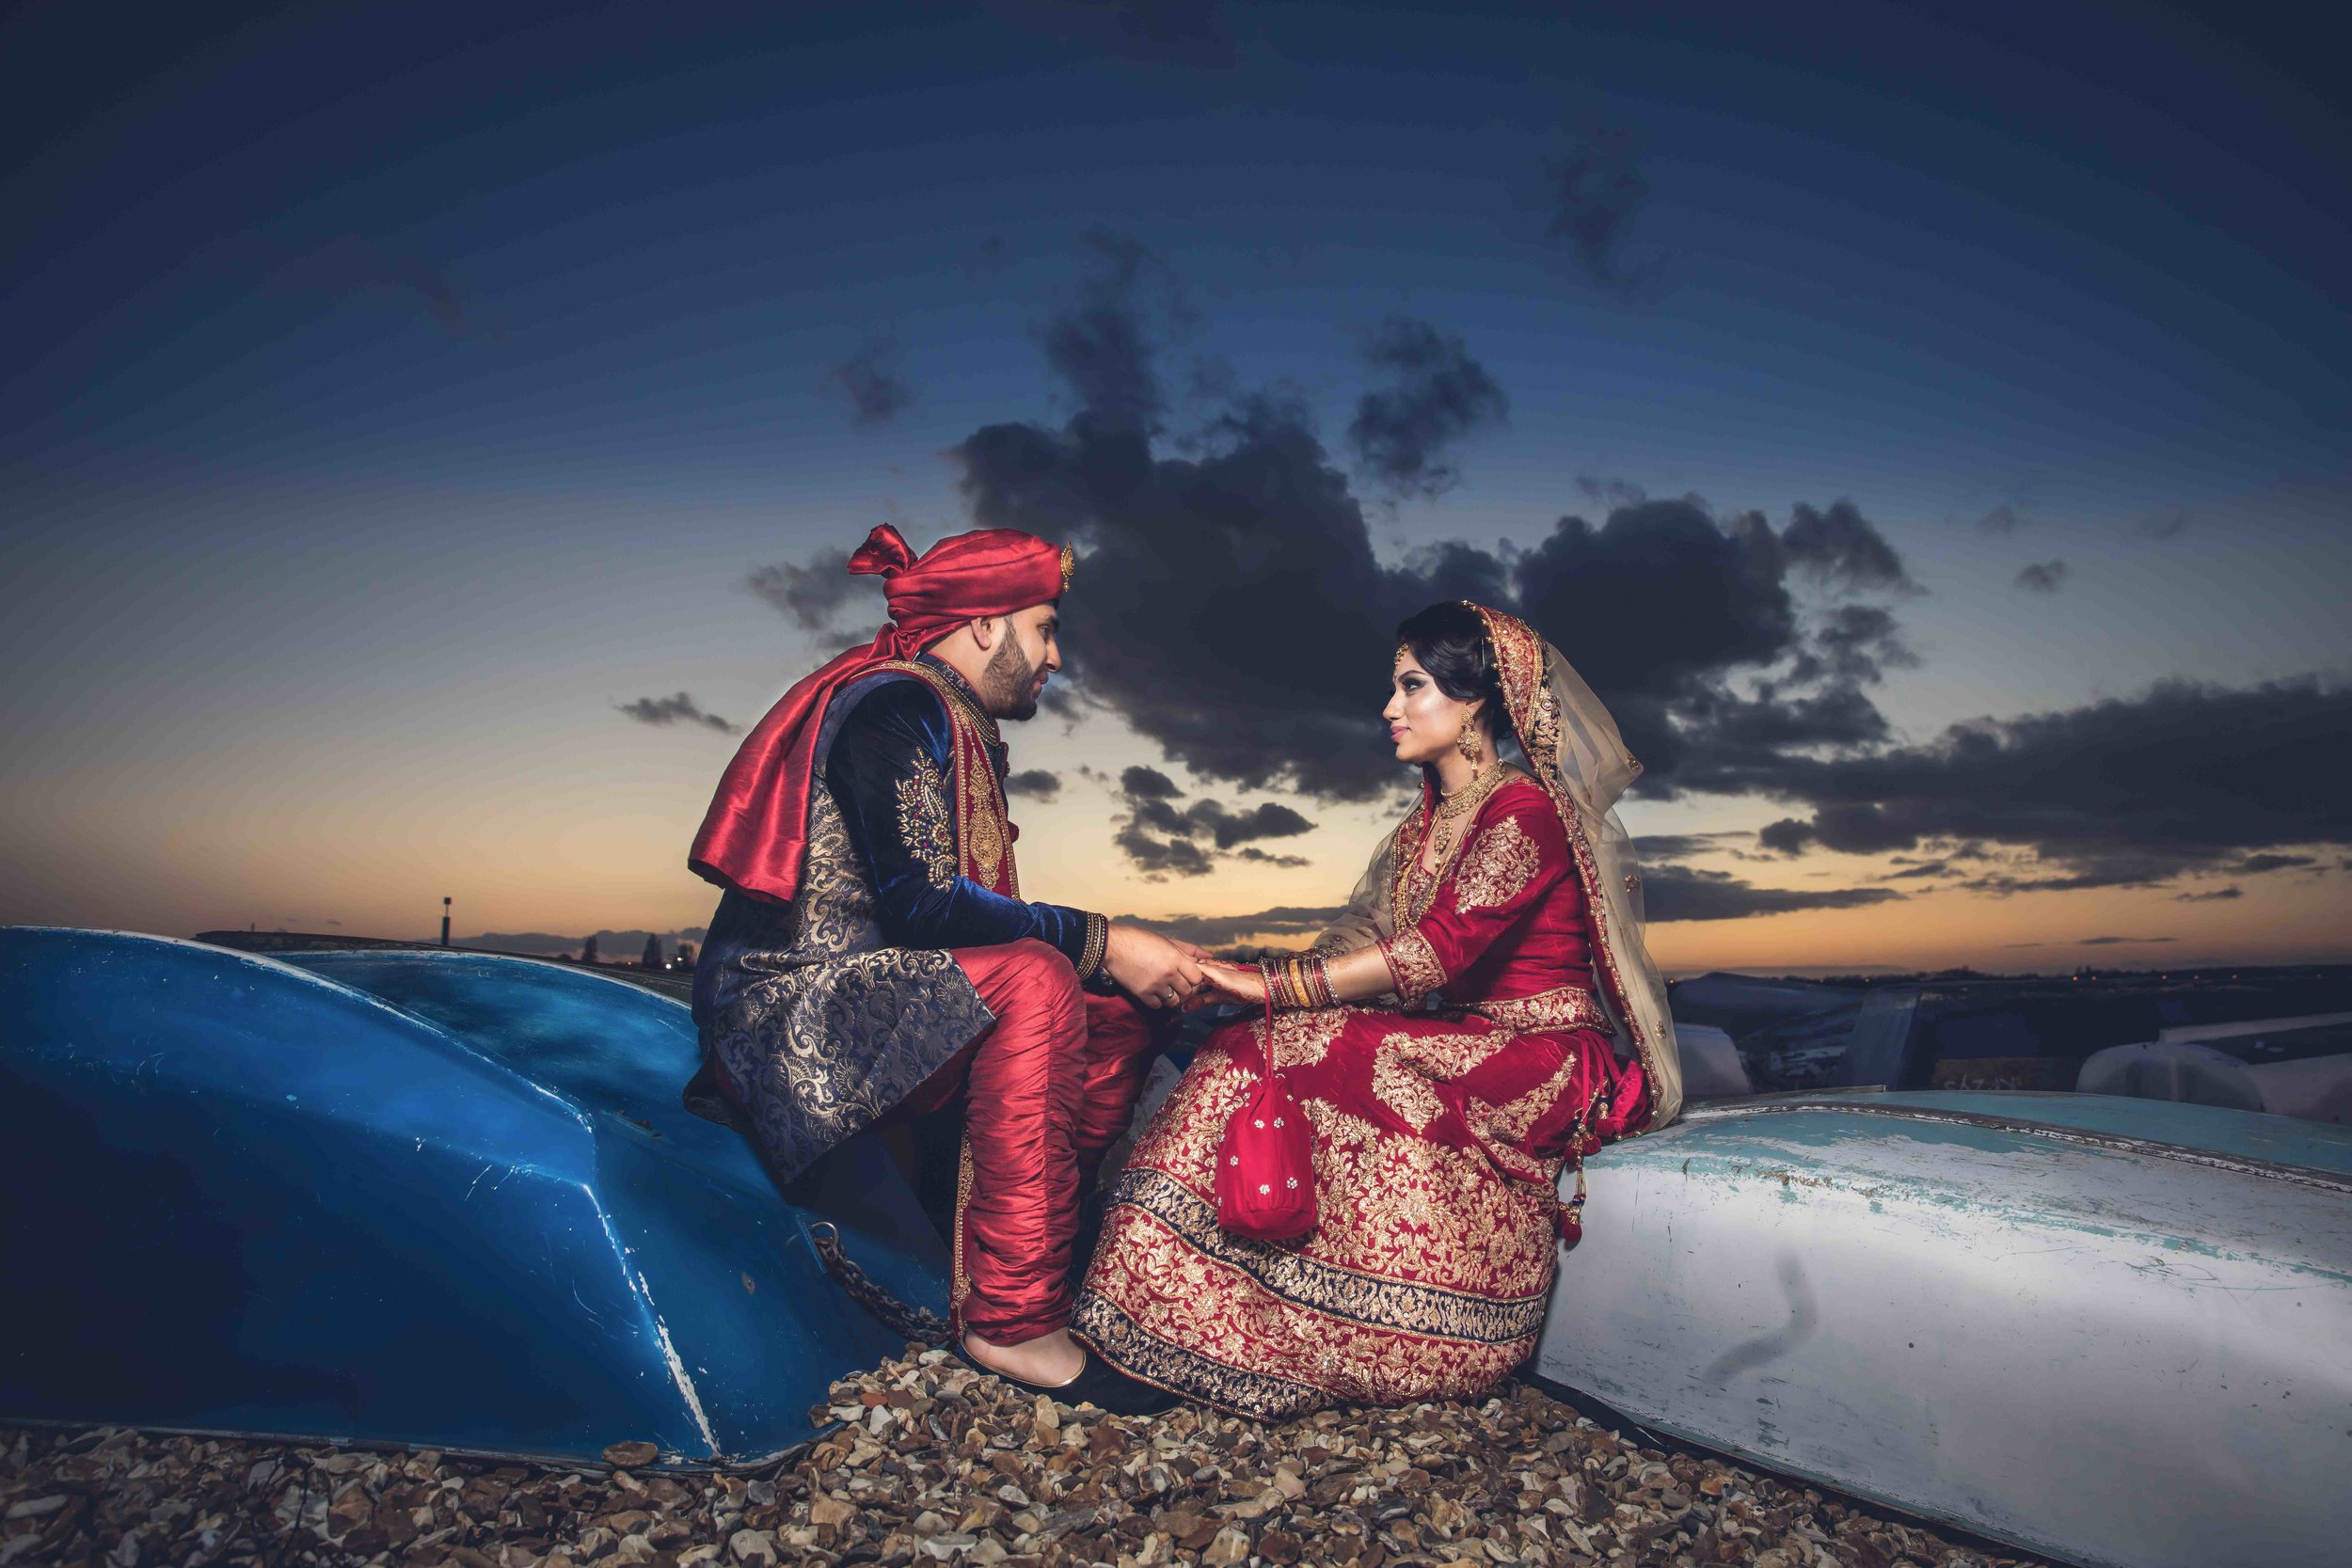 Asian Wedding Photographer Opu Sultan Photography portsmouth Scotland Edinburgh Glasgow London Manchester Liverpool Birmingham Wedding Photos prewed shoot Luko & Rujina Blog-28.jpg